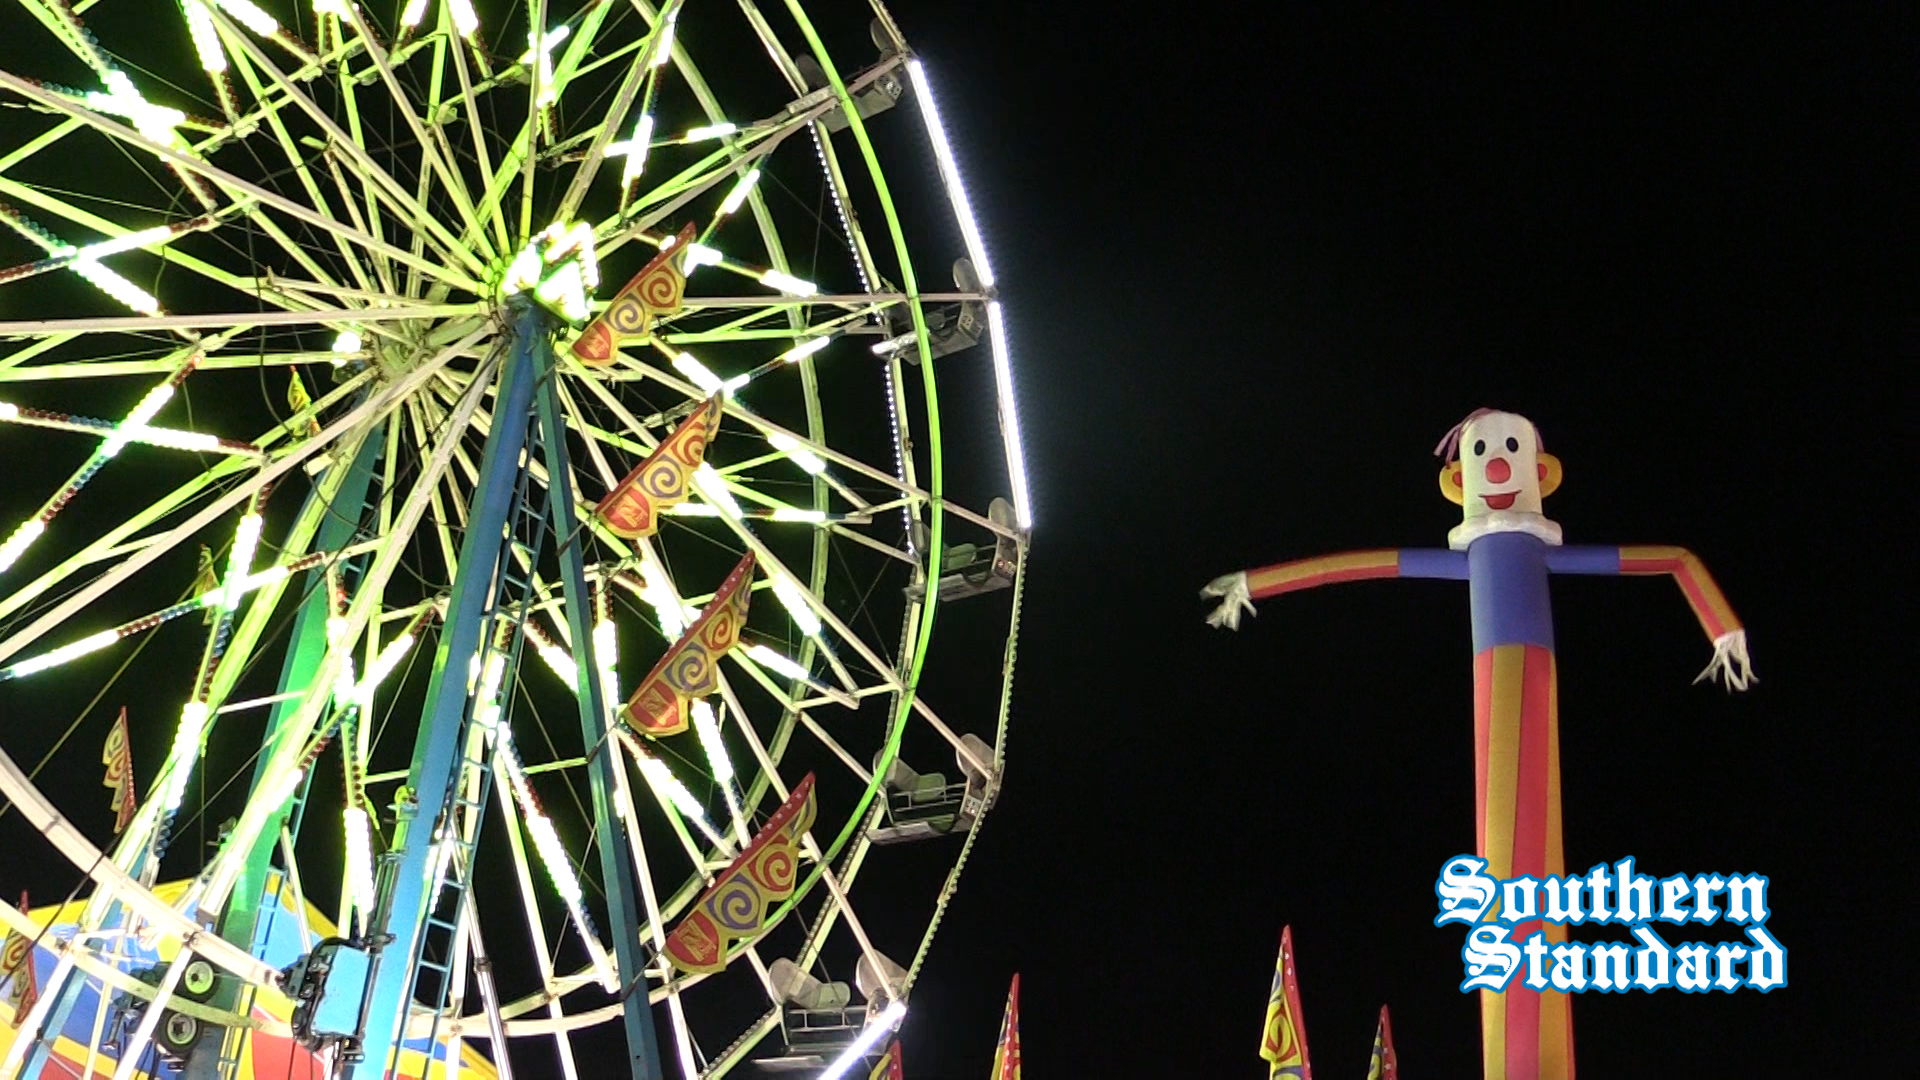 Highlights from the Warren County Fair